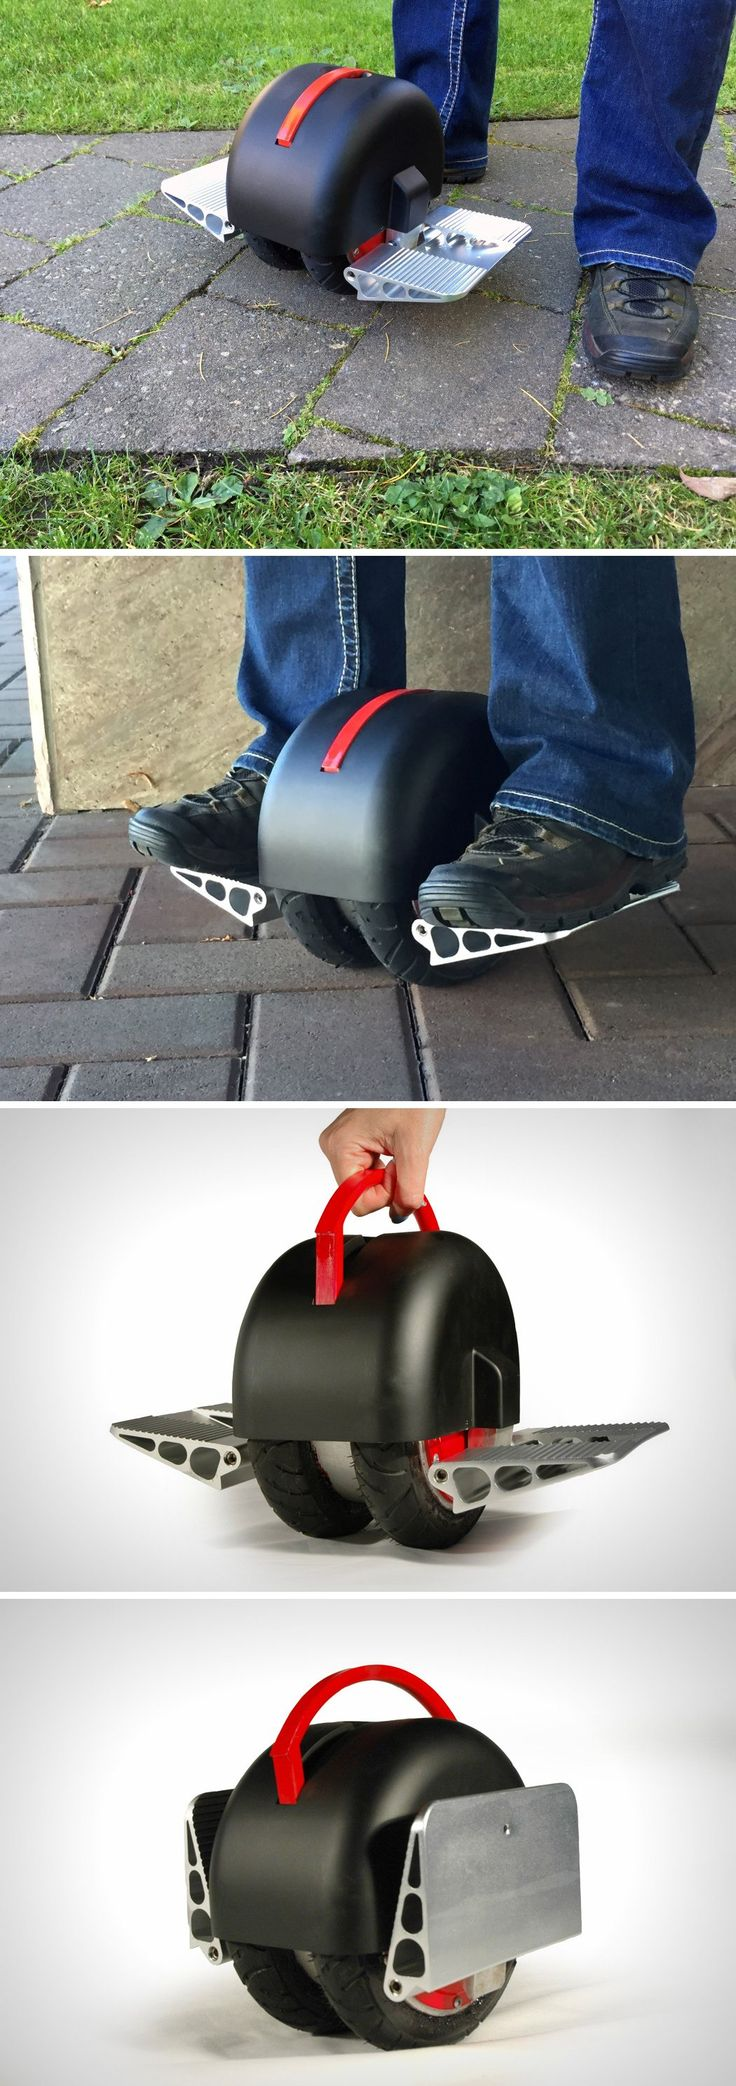 Who thought that one day you could buy a motorized vehicle that was just slightly larger than a hamburger. Aptly named, the Solowheel Iota is officially the smallest hover-board money can buy.